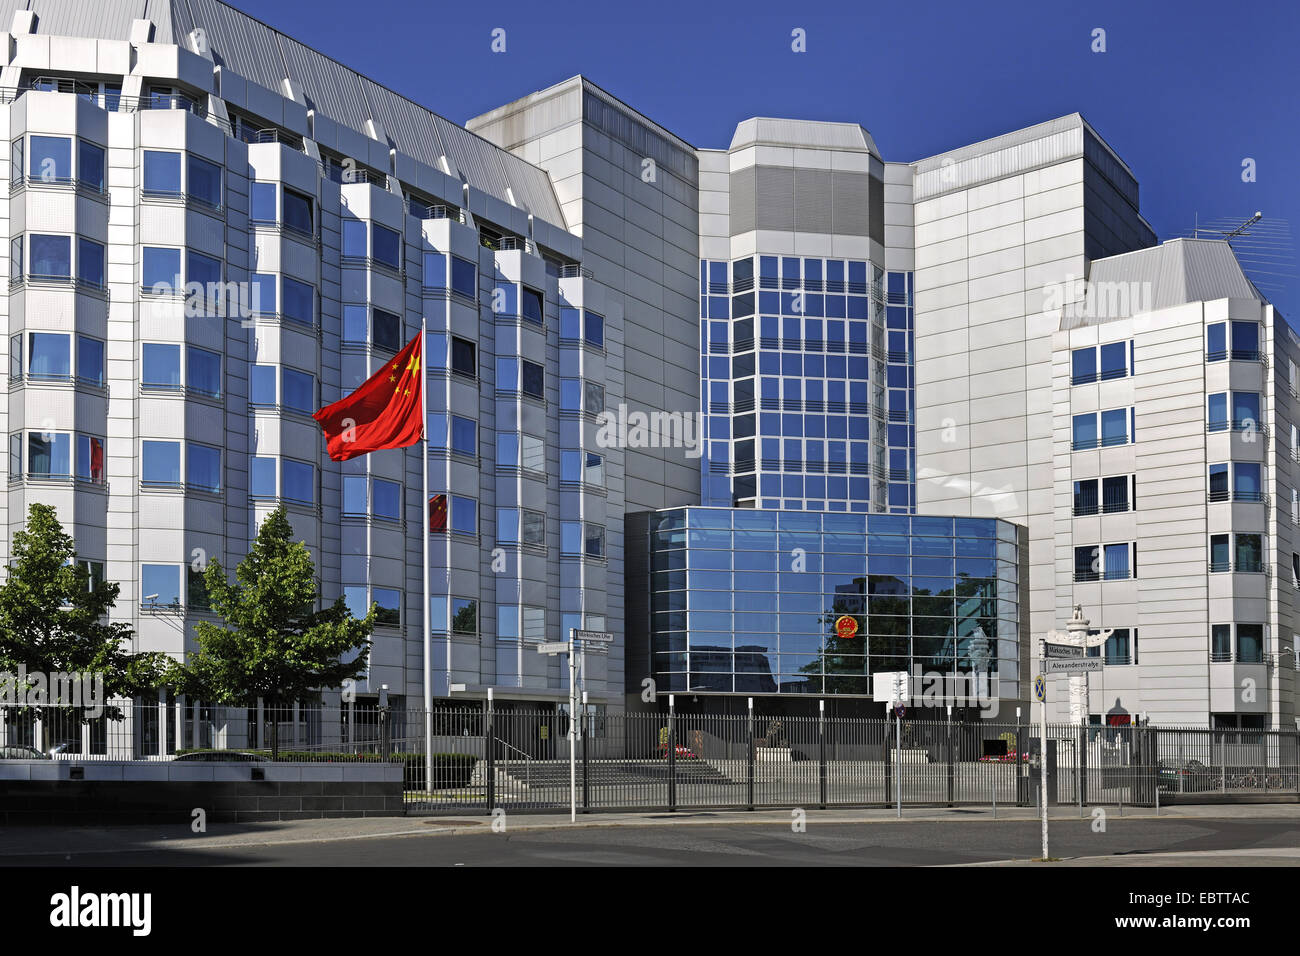 embassy of People's Republic of China, Germany, Berlin - Stock Image